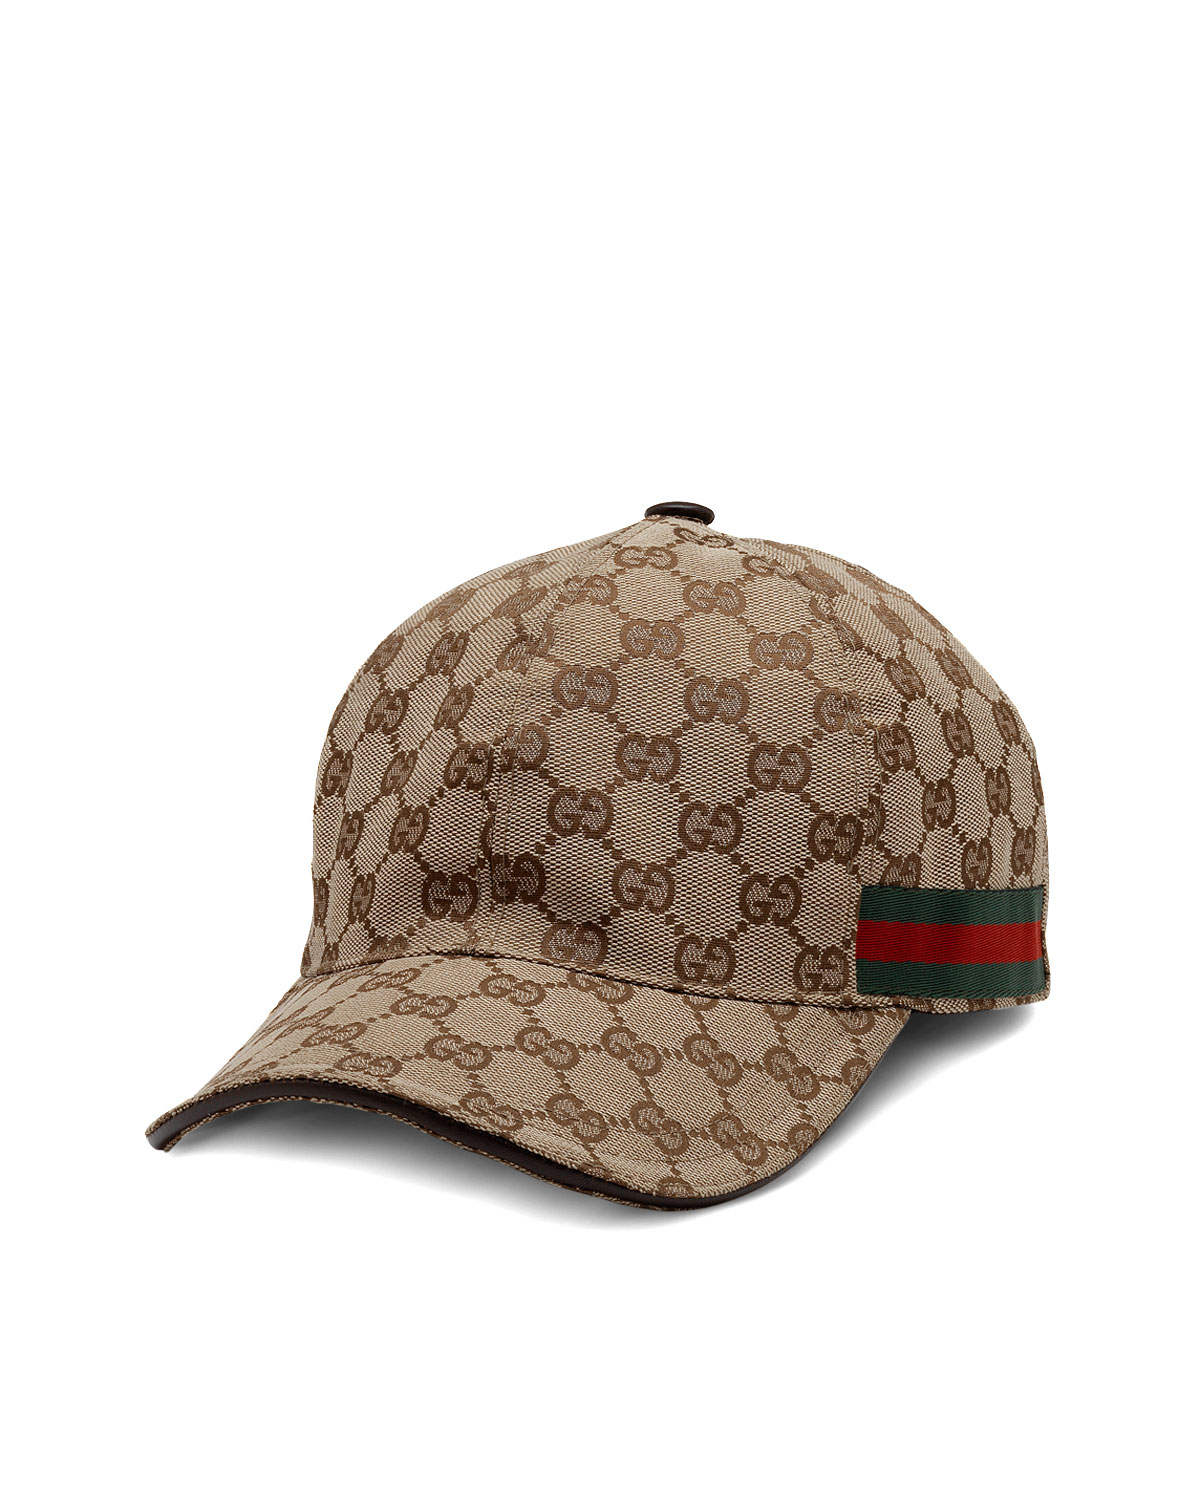 Gucci White Havana Hat in White | Lyst |White Gucci Hat